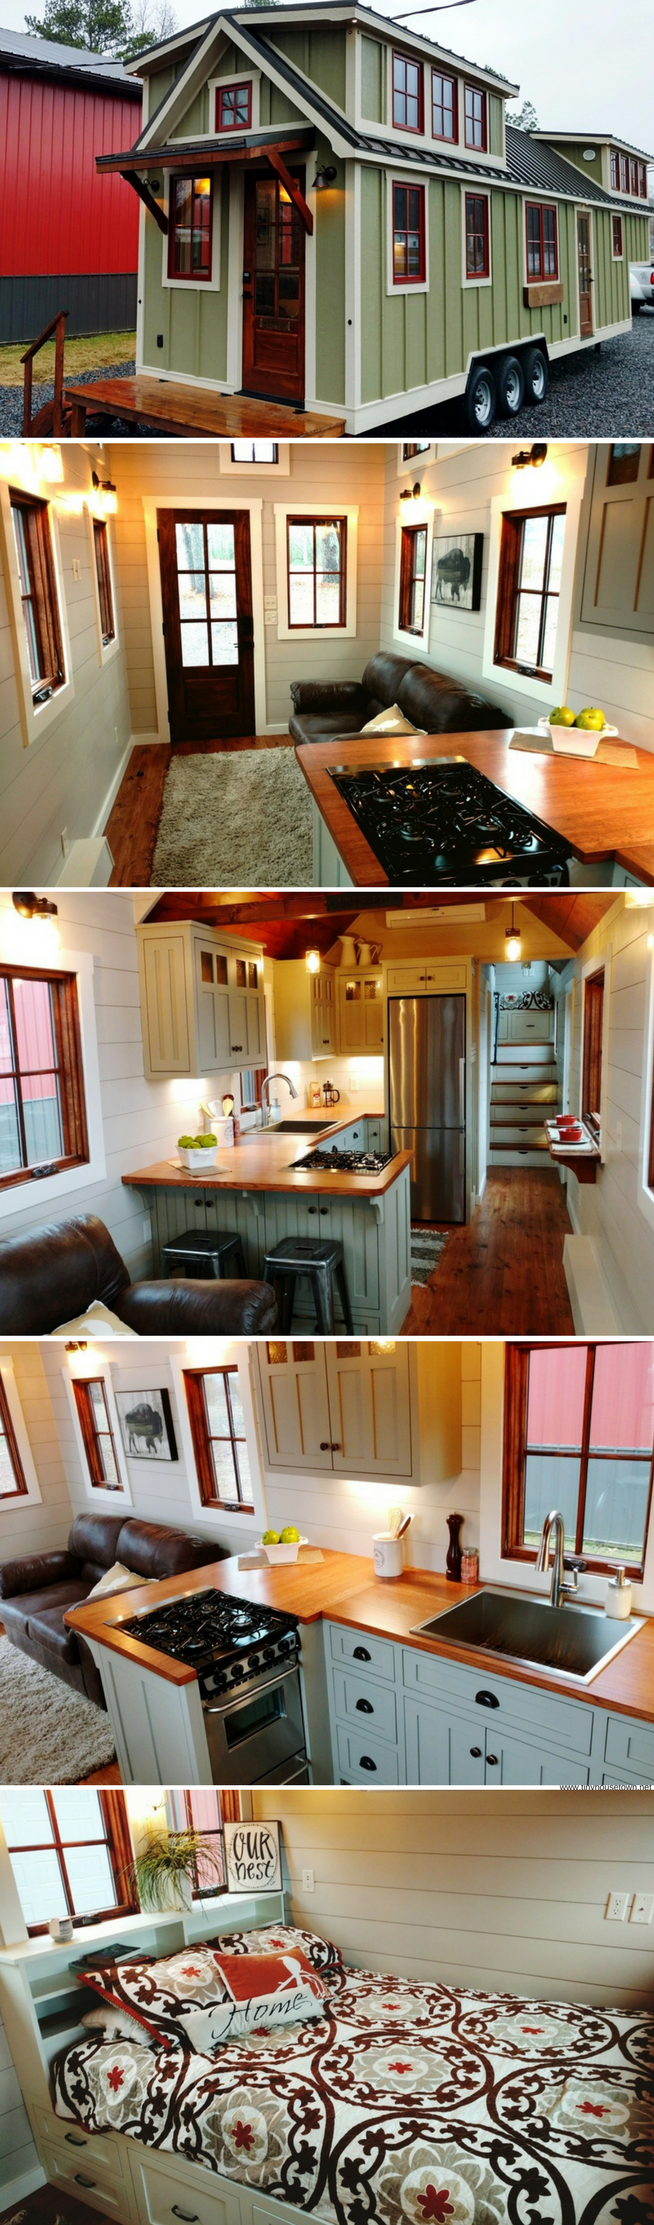 A luxury 352 sq ft farmhouse from